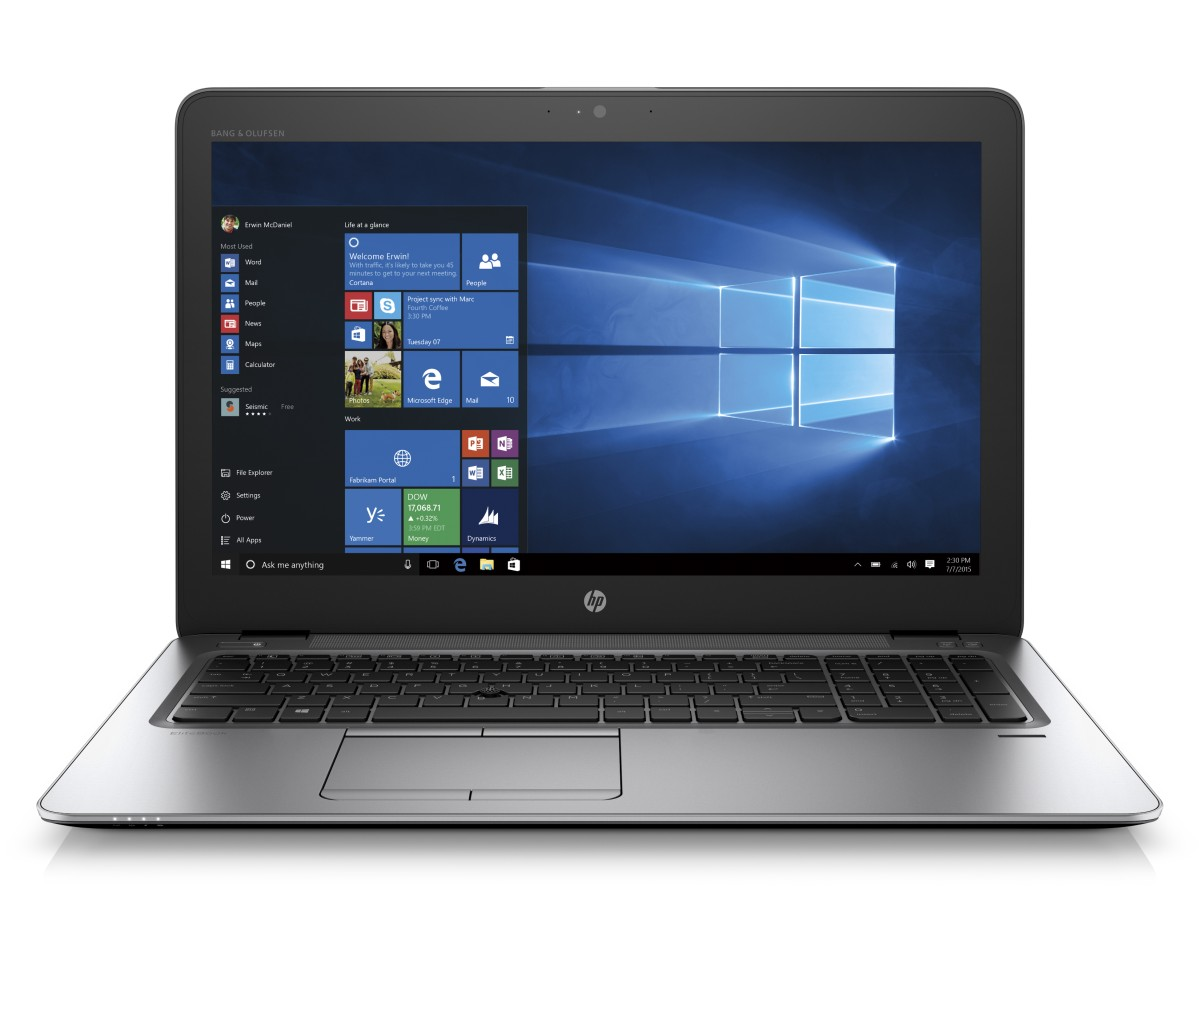 HP EliteBook 850 G4 i5-7200U 15.6 FHD 4GB 256GB FP backlit W10P